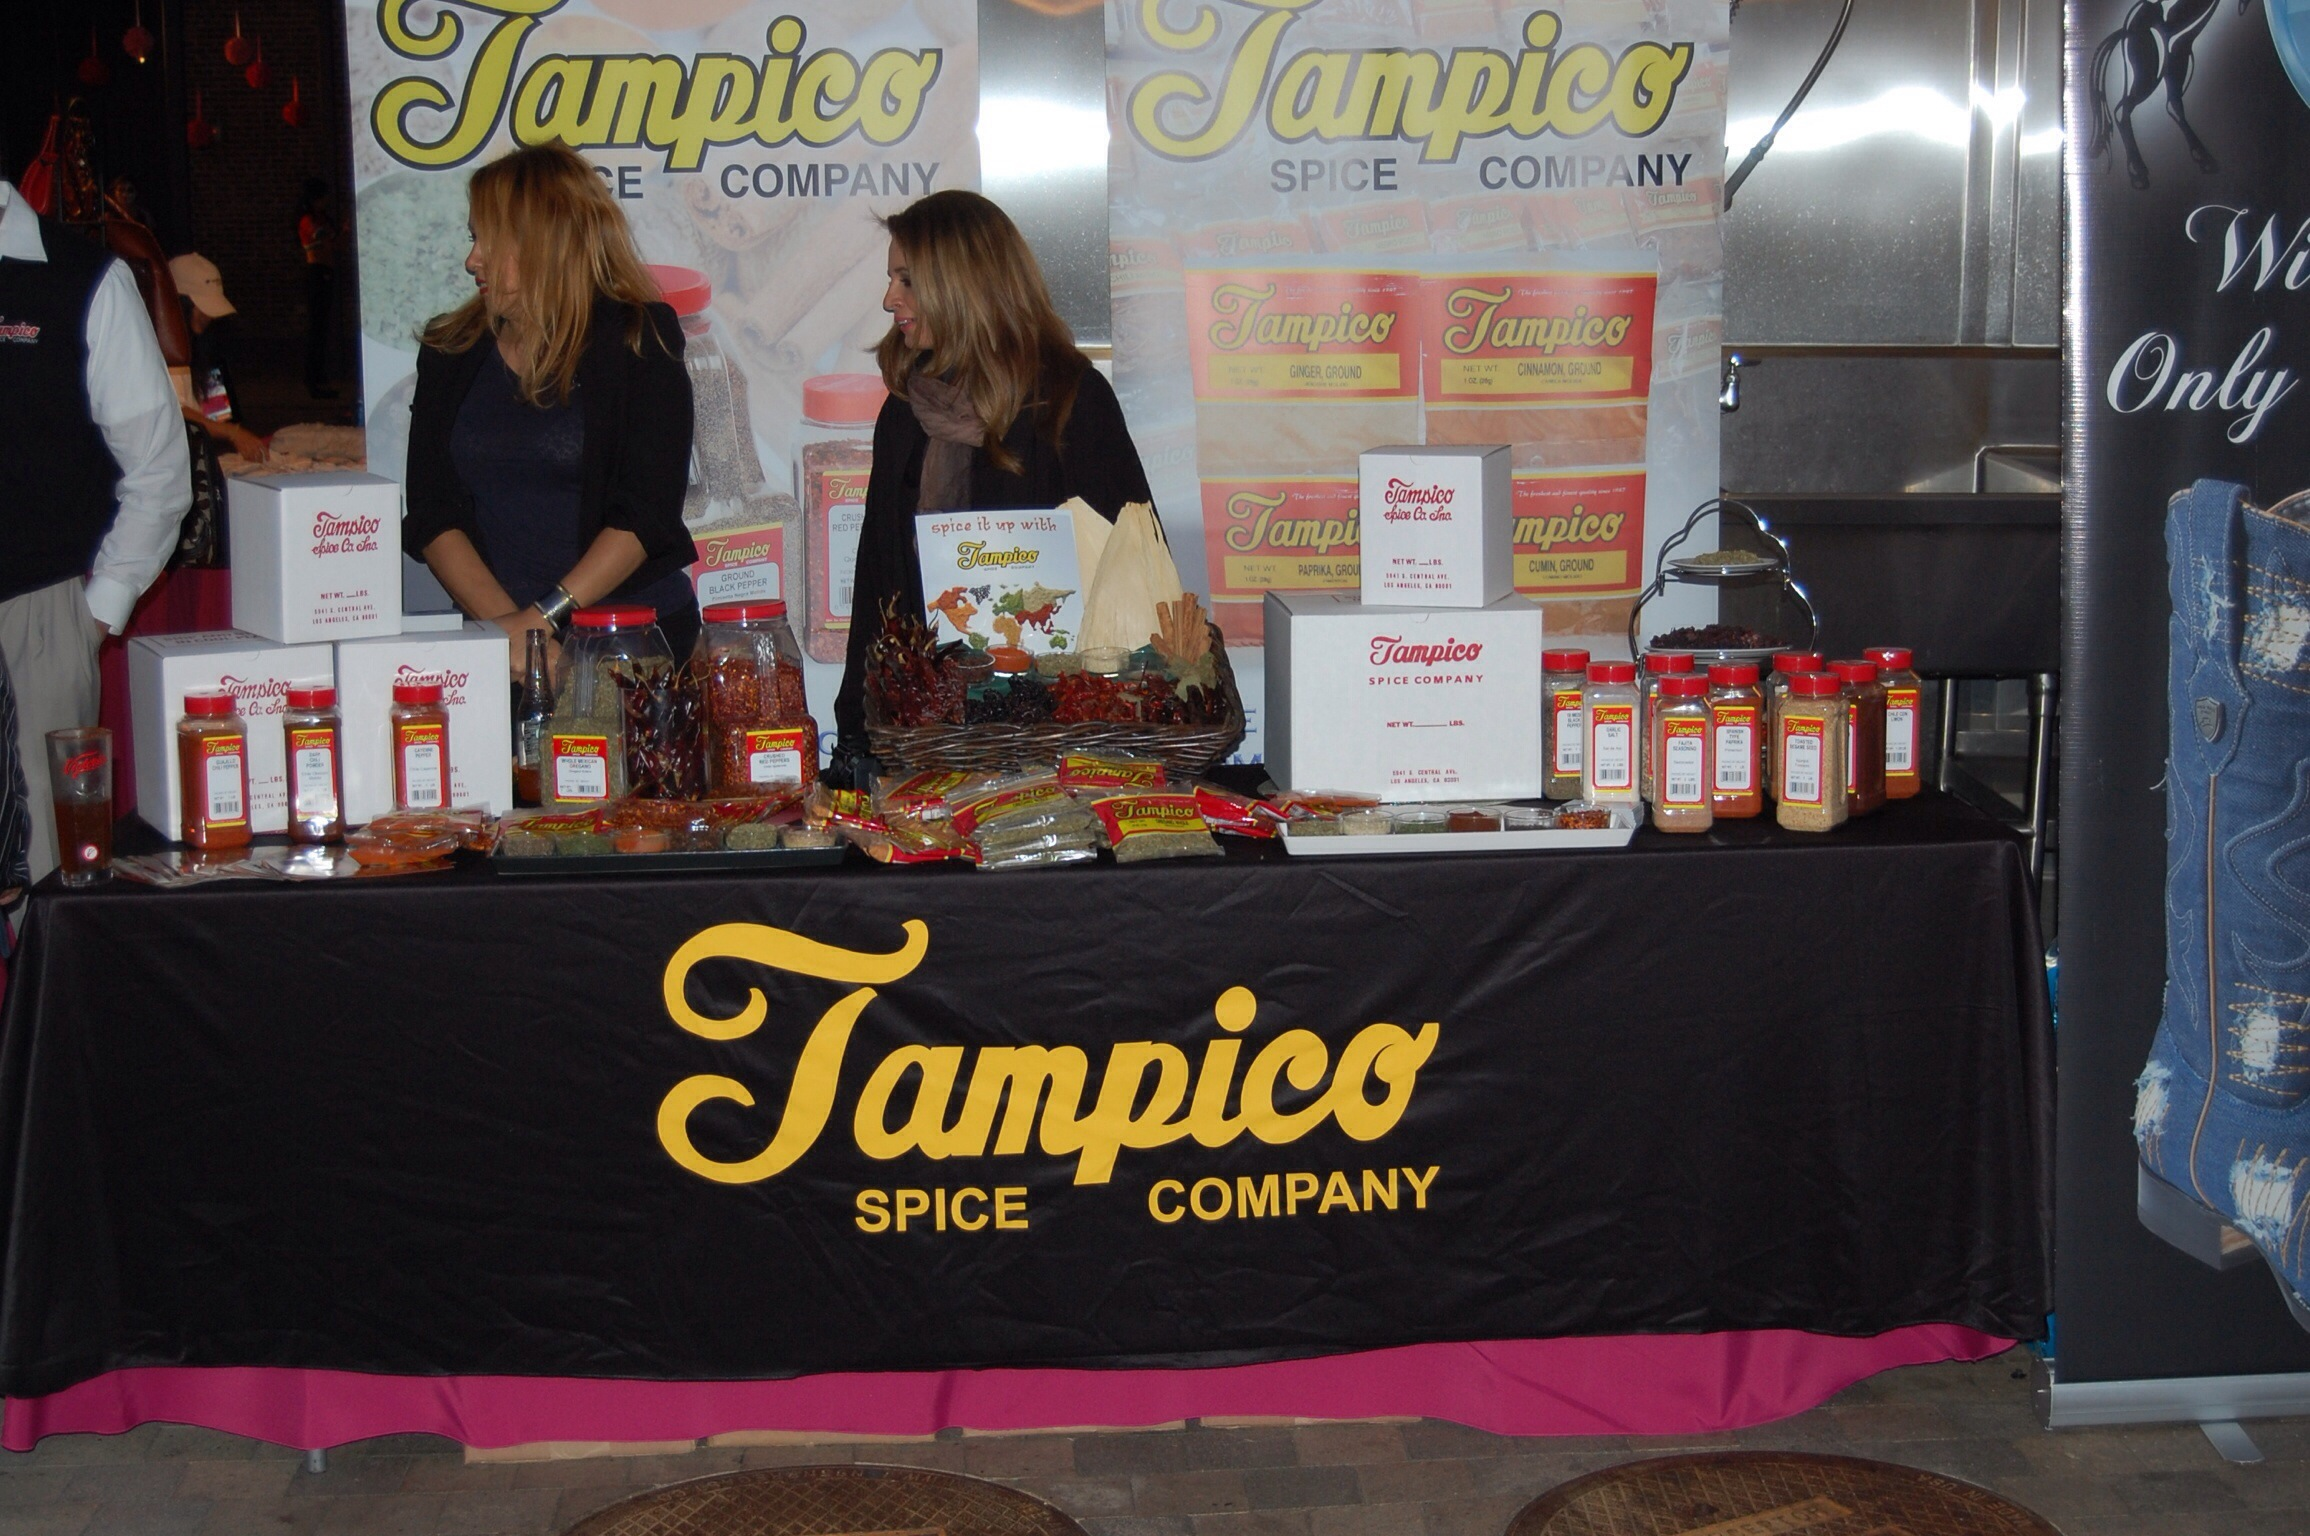 Tampico Spice Company at The Taste of Mexico 2013